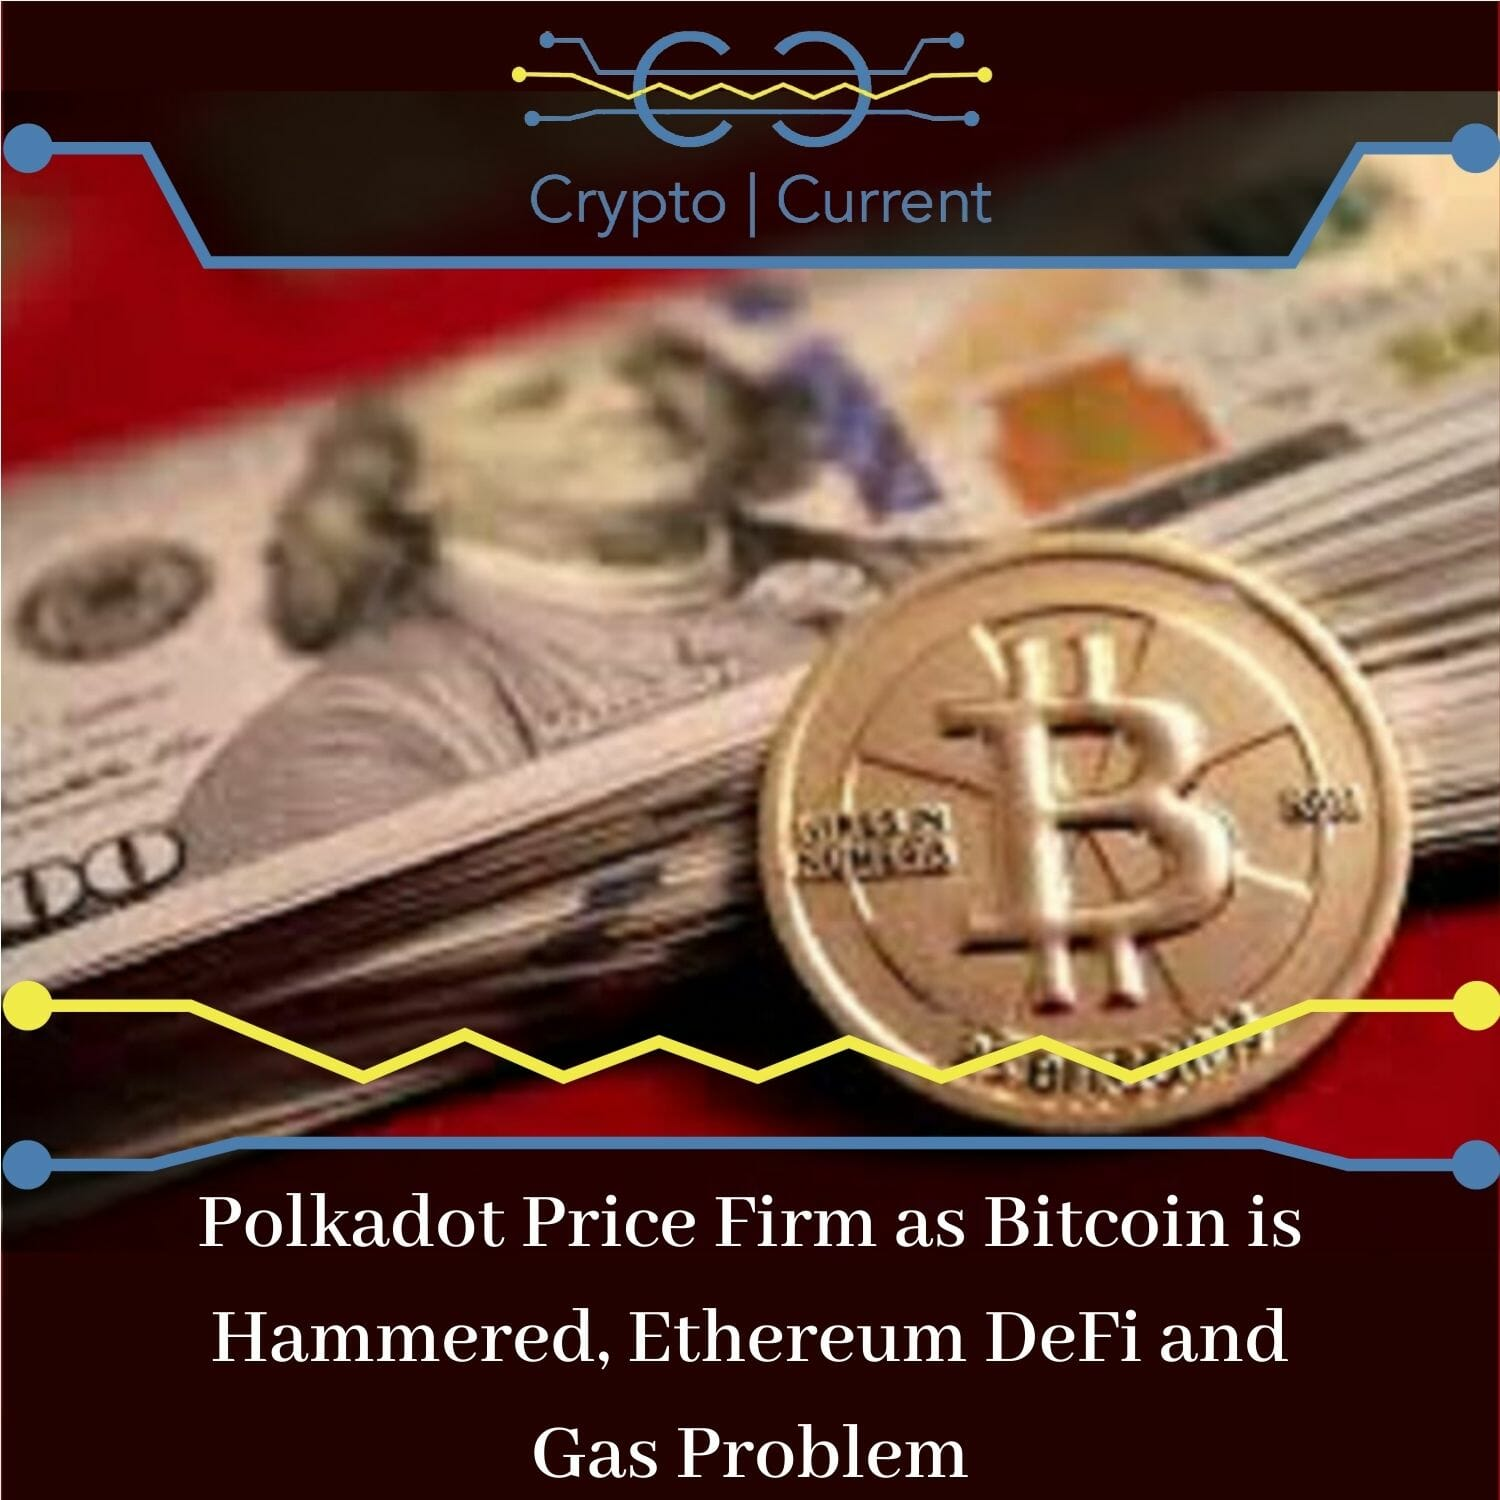 Polkadot Price Firm as Bitcoin is Hammered, Ethereum DeFi and Gas Problem